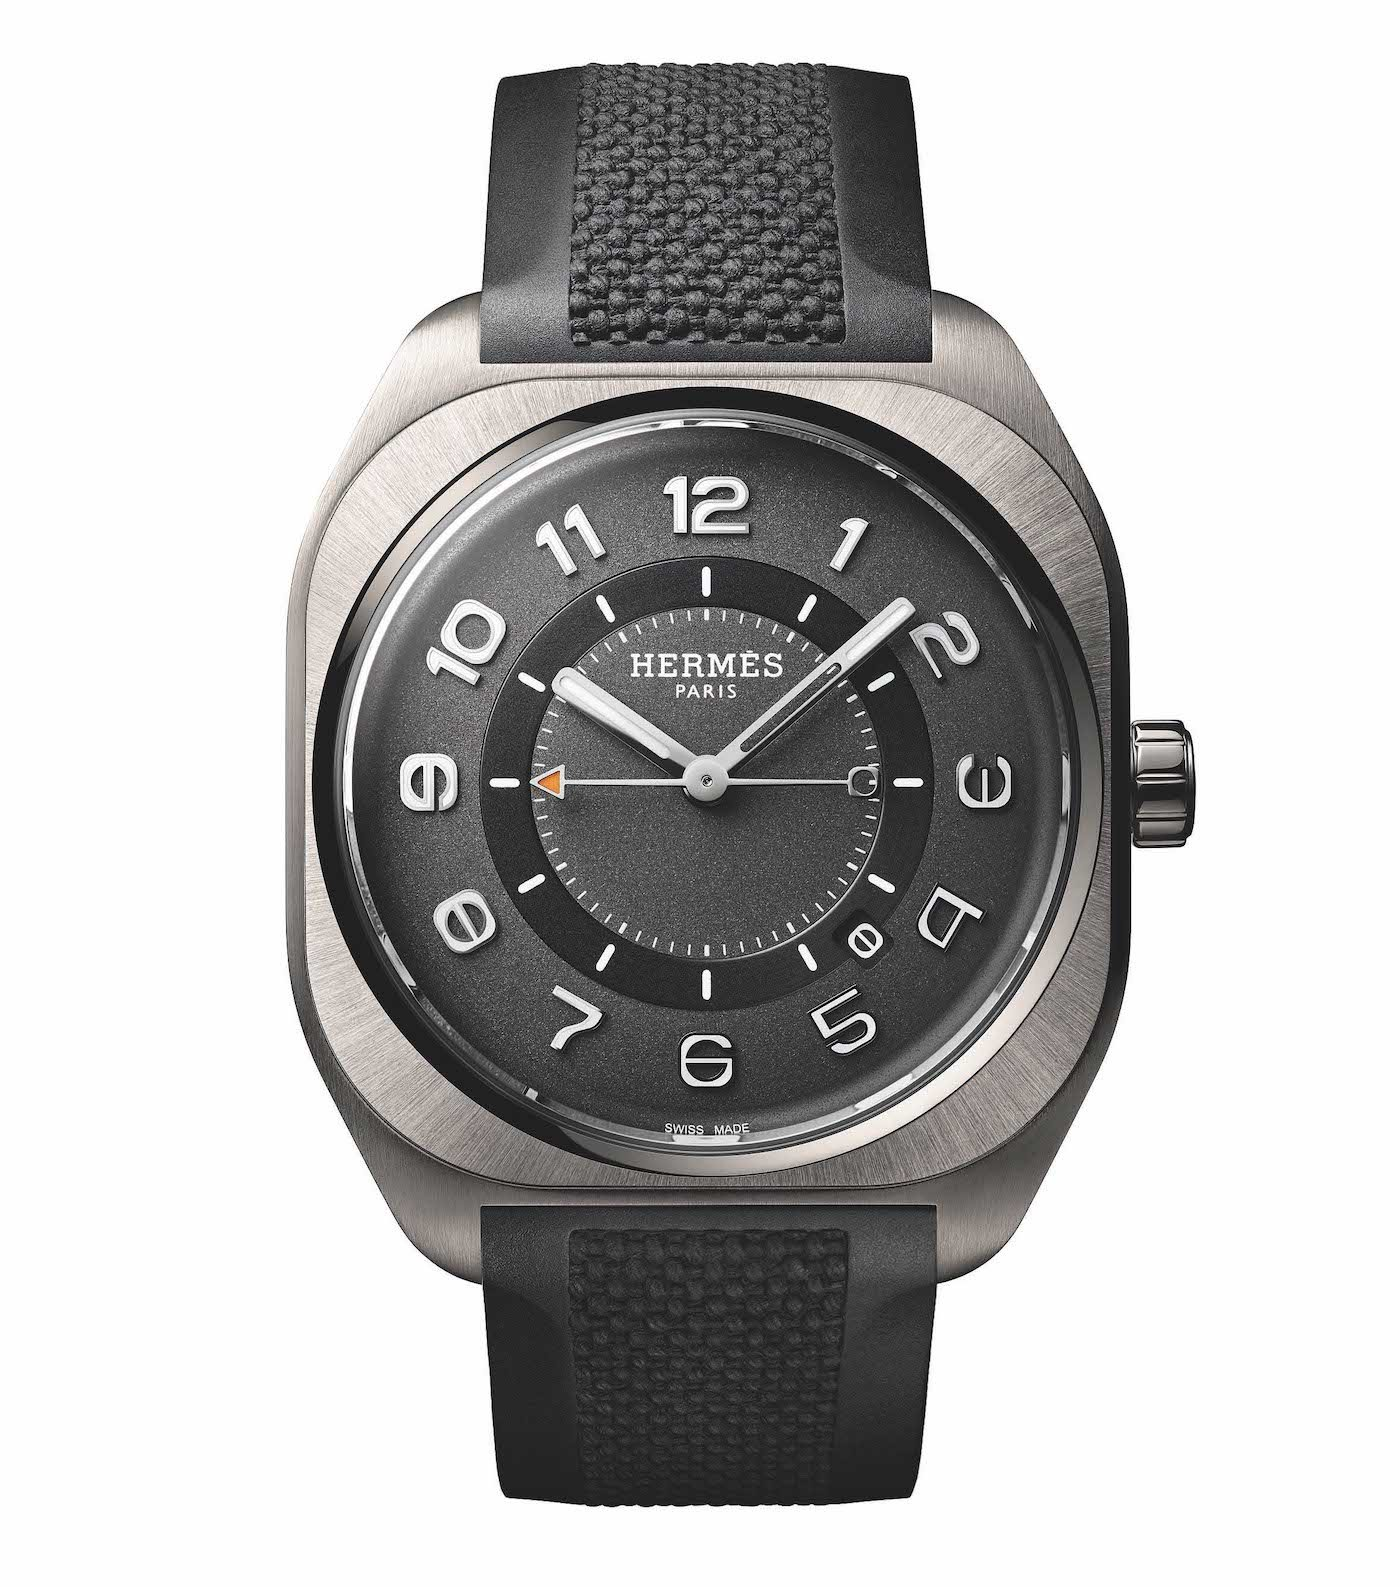 An introduction to the Hermès H08 watch